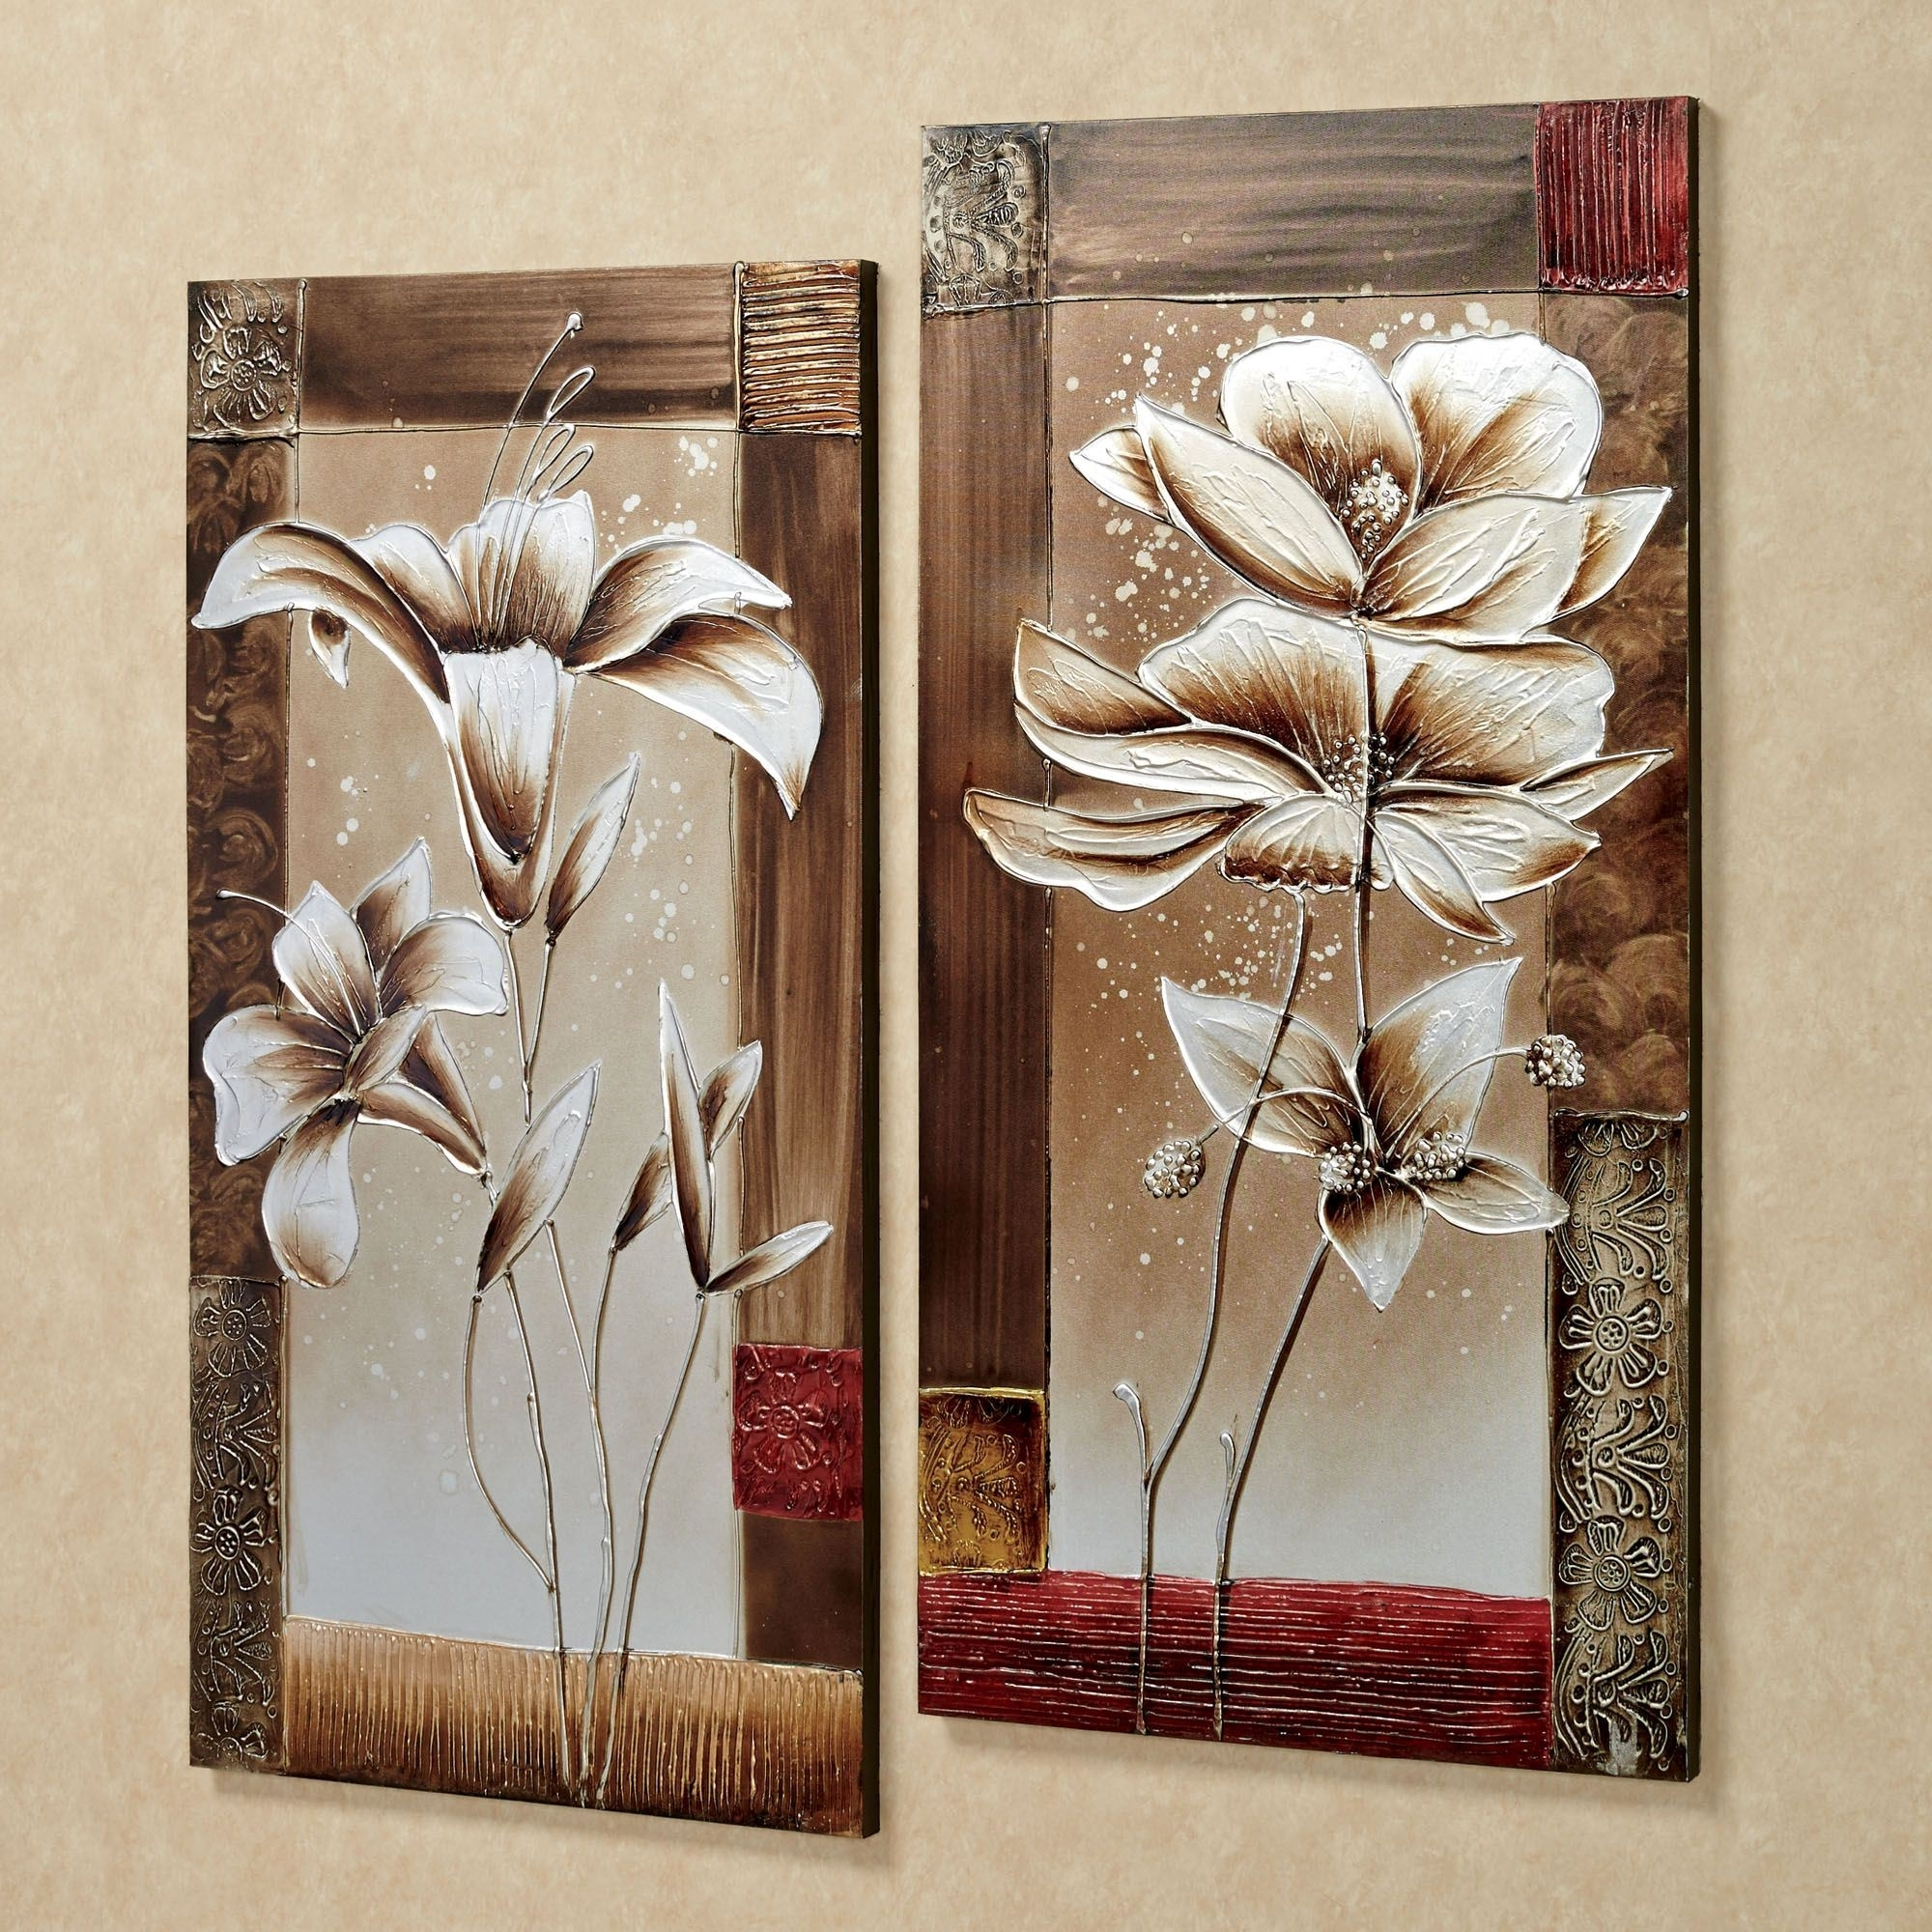 Canvas Wall Art | Touch Of Class Regarding Most Recently Released Earth Tones Wall Accents (View 14 of 15)